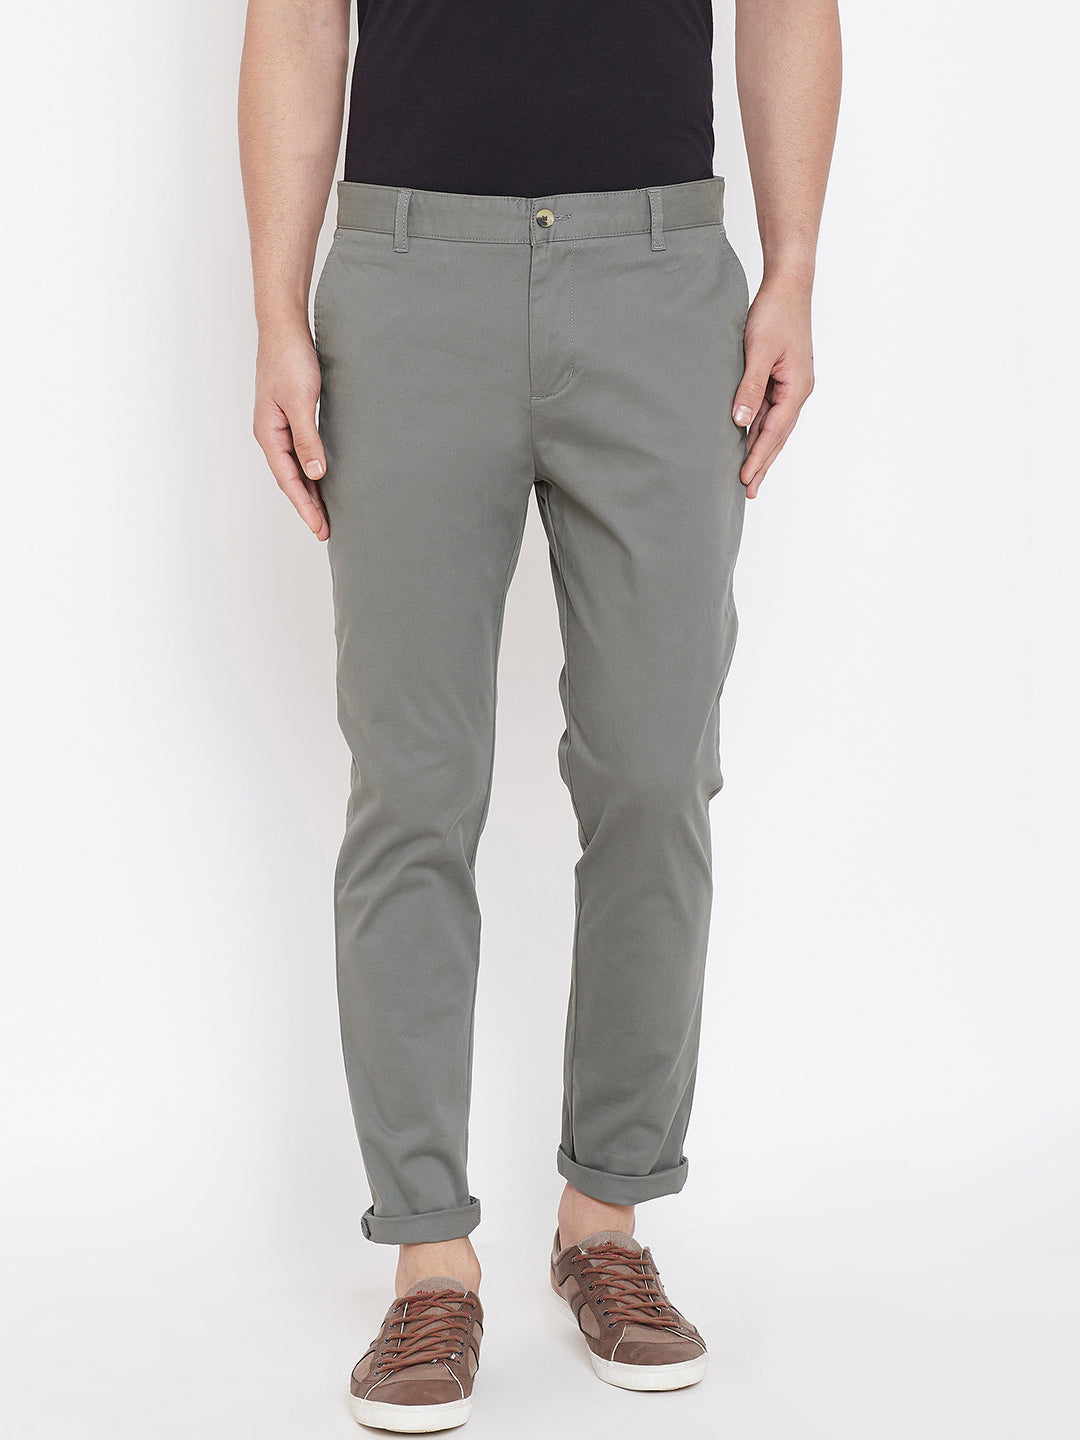 Men's Charcoal Stretch Washed Casual Tailored Fit Chinos